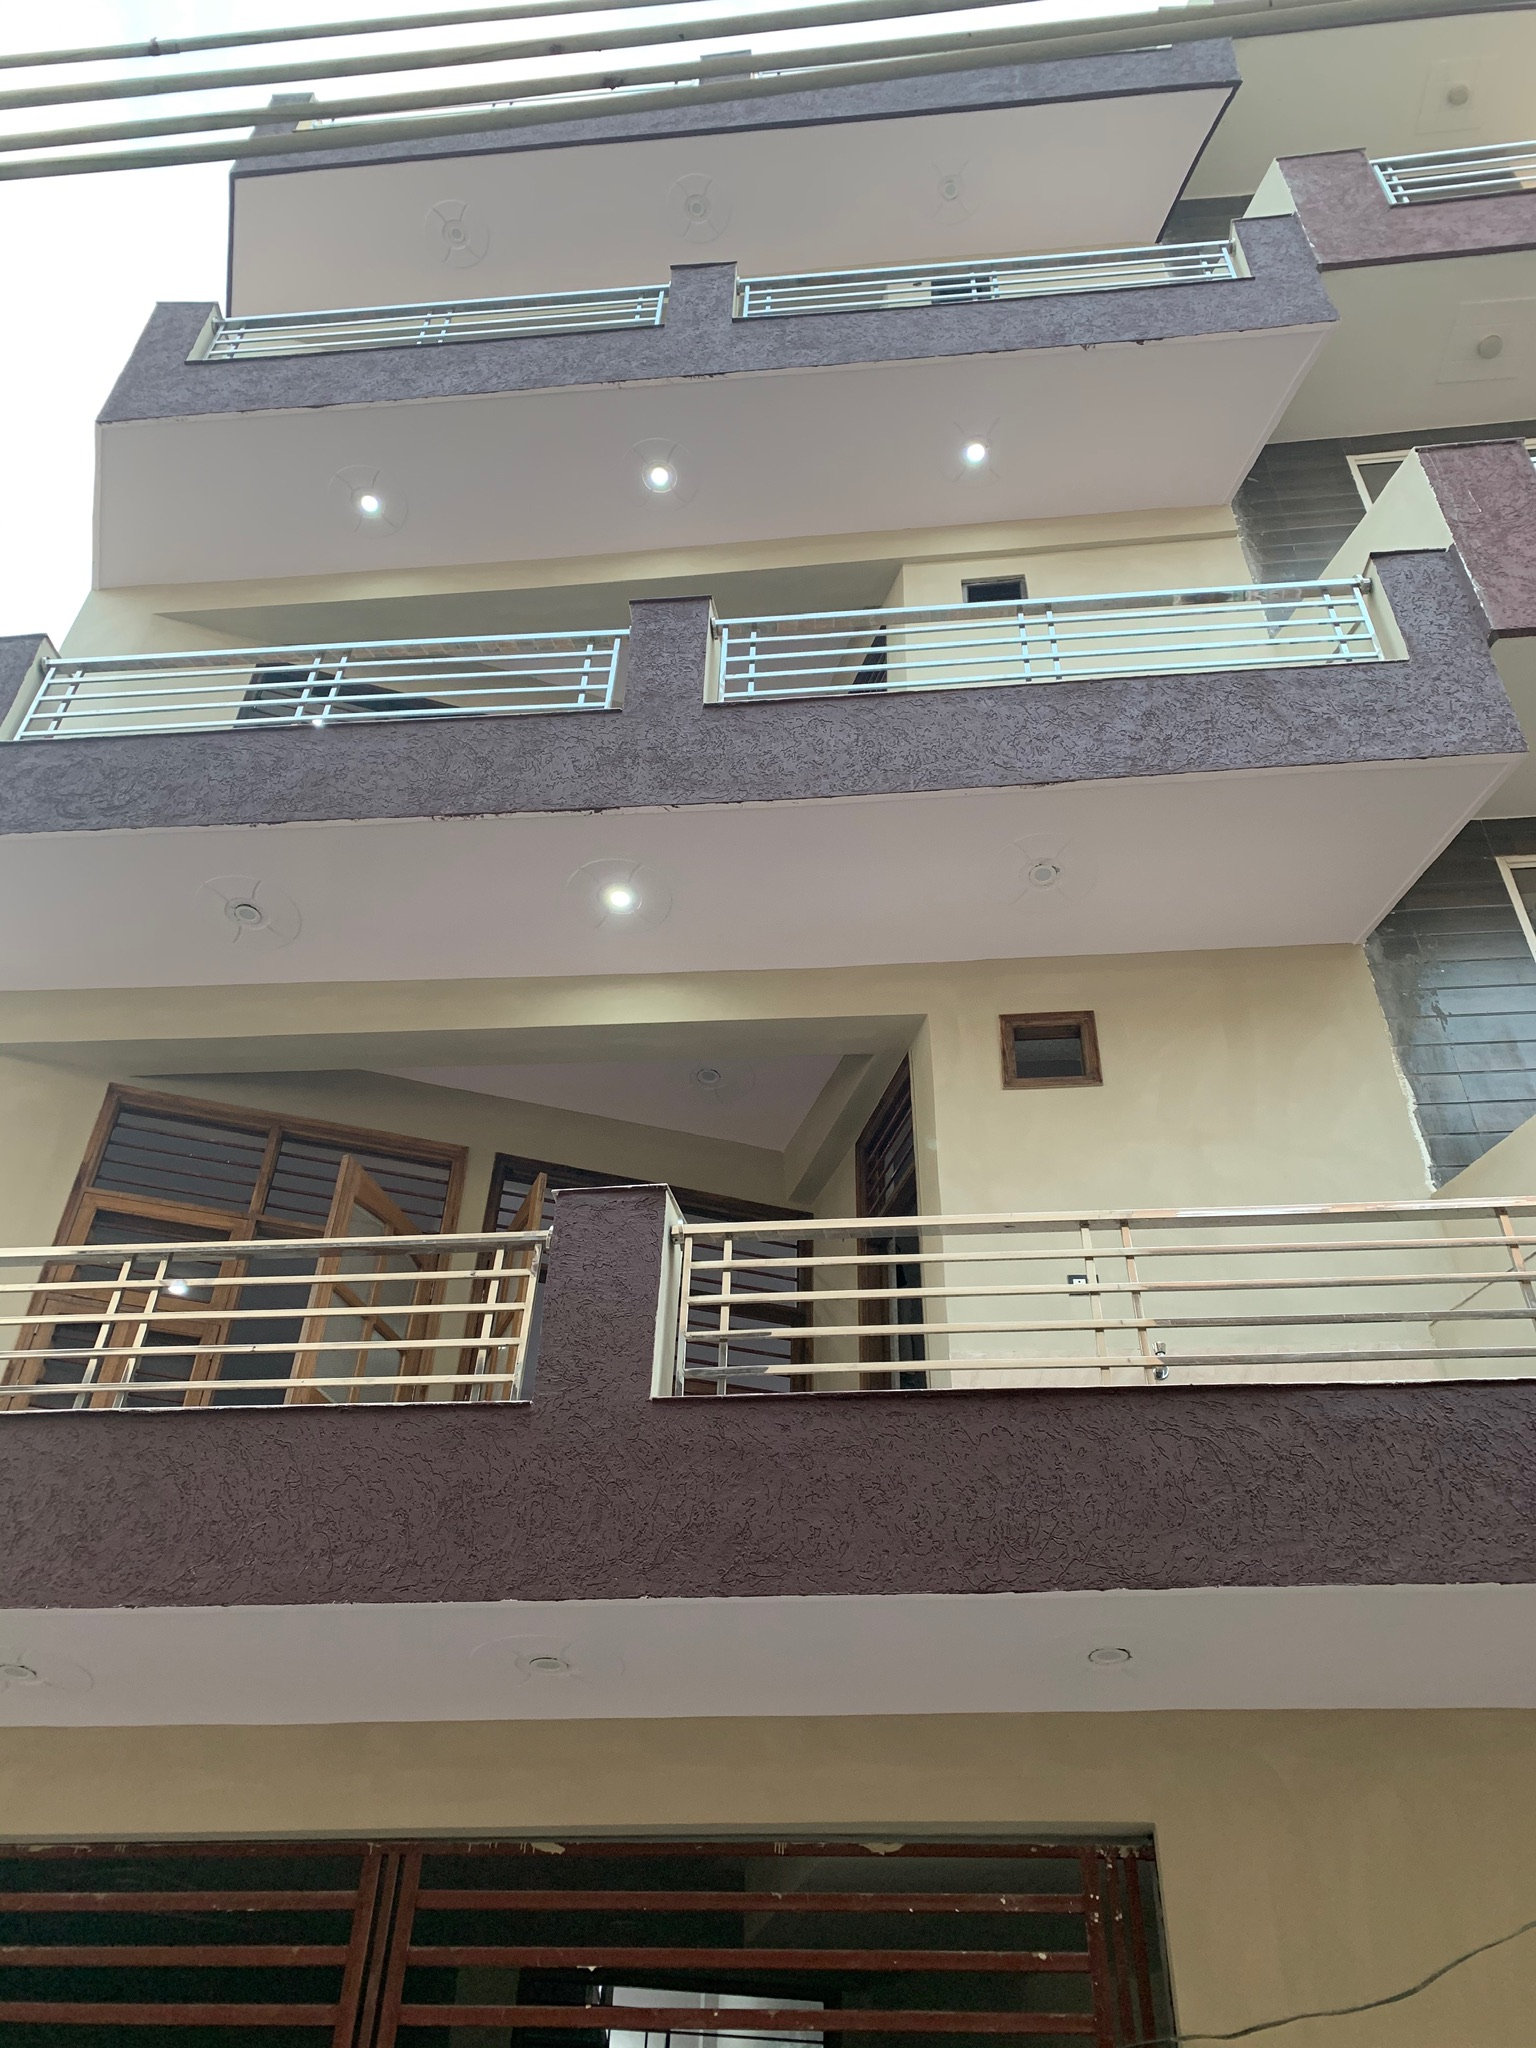 2BHK Flat for rent in Sector 11, Gurgaon